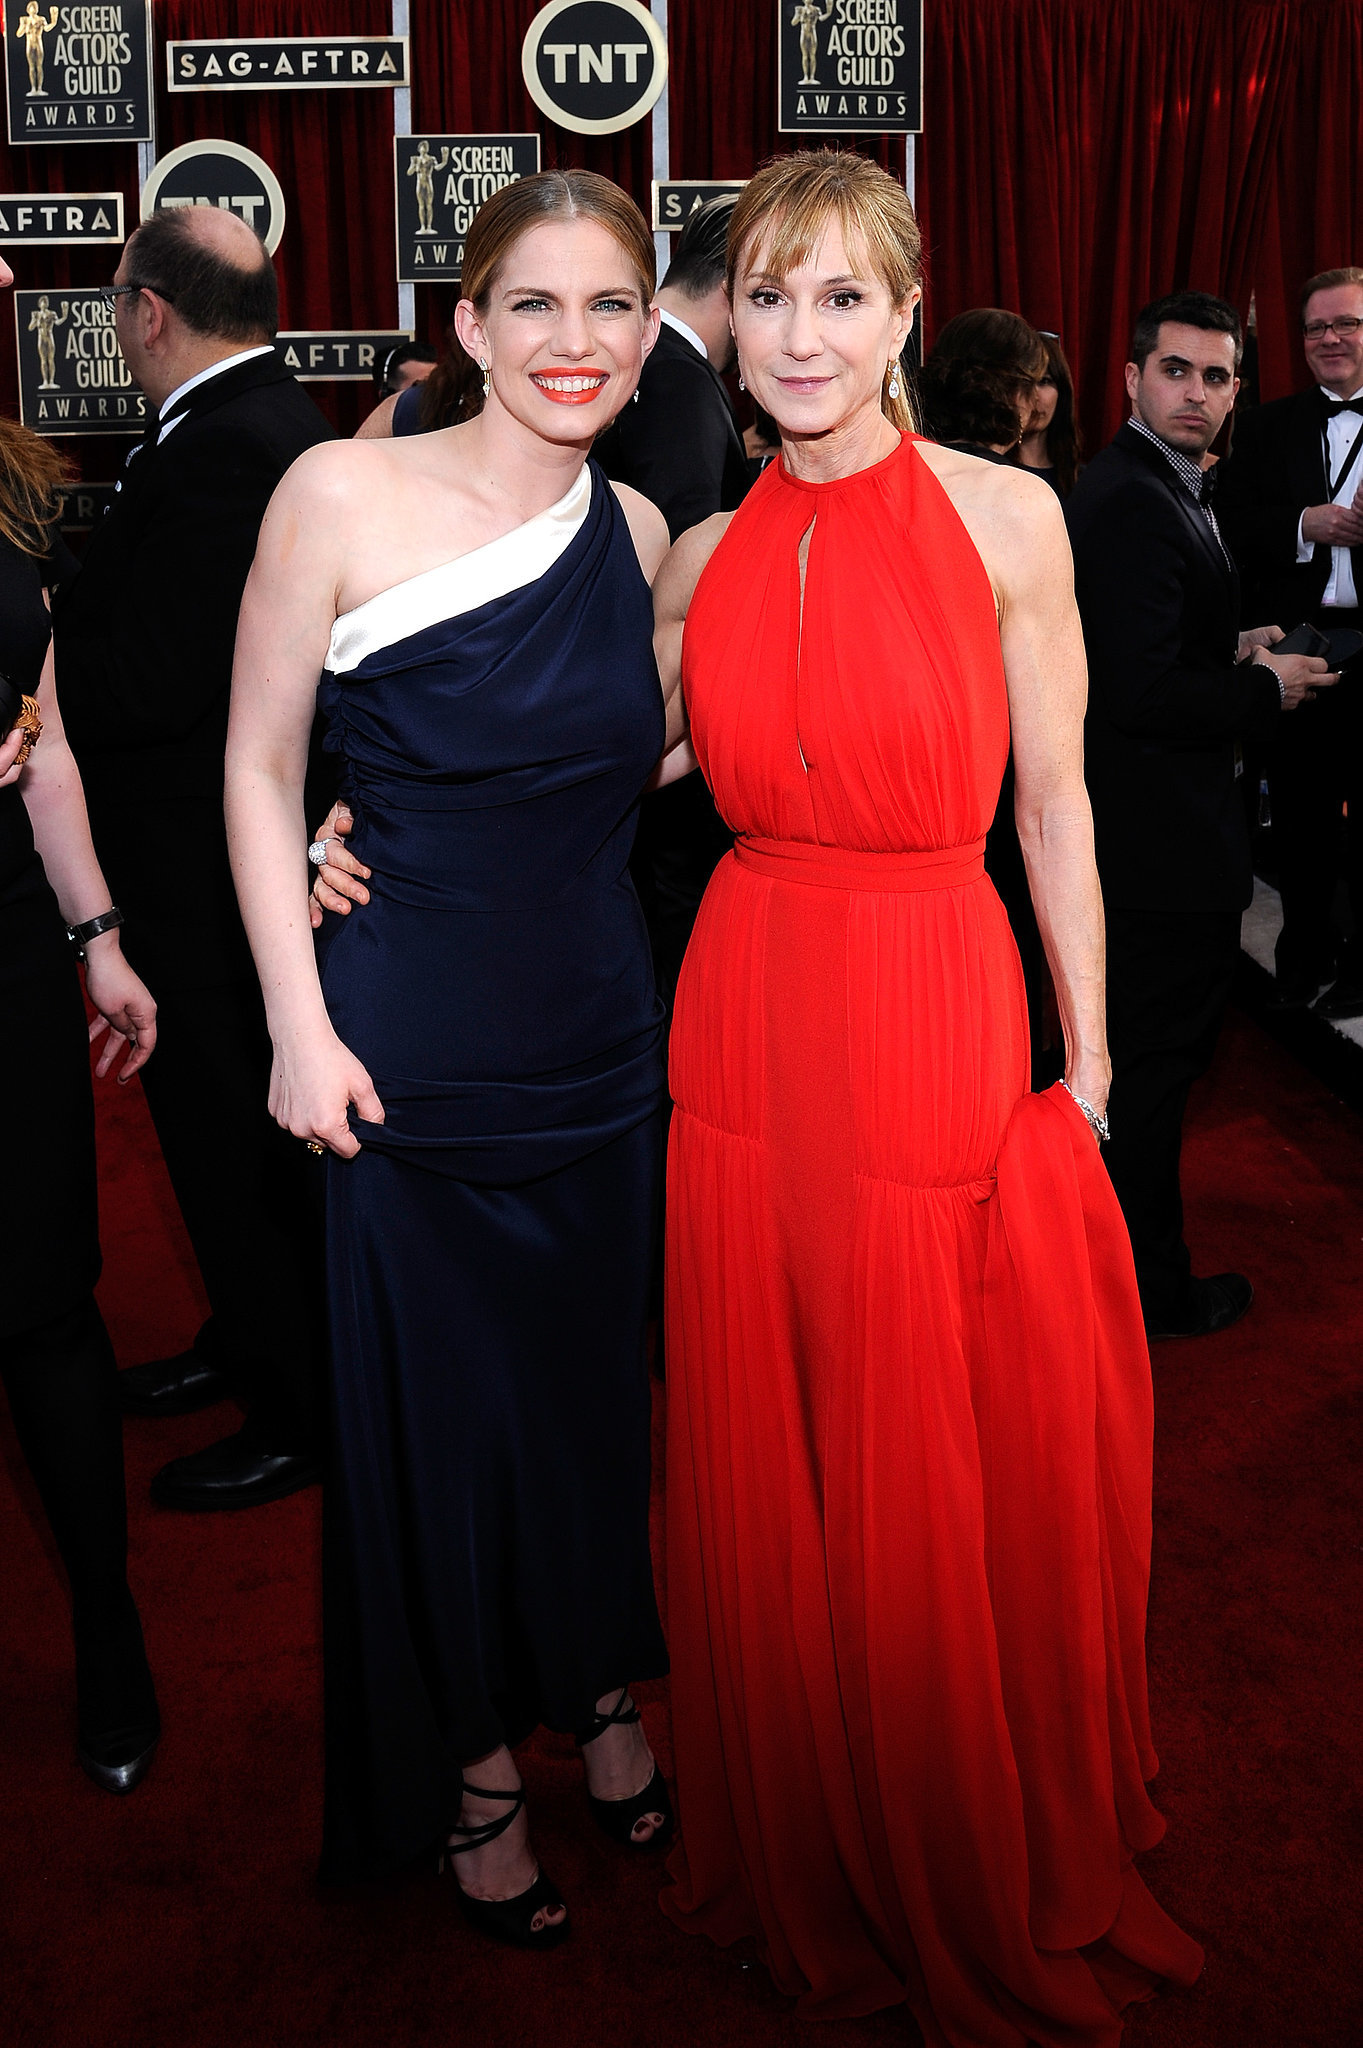 Anna Chlumsky and Holly Hunter paired up for a snap.